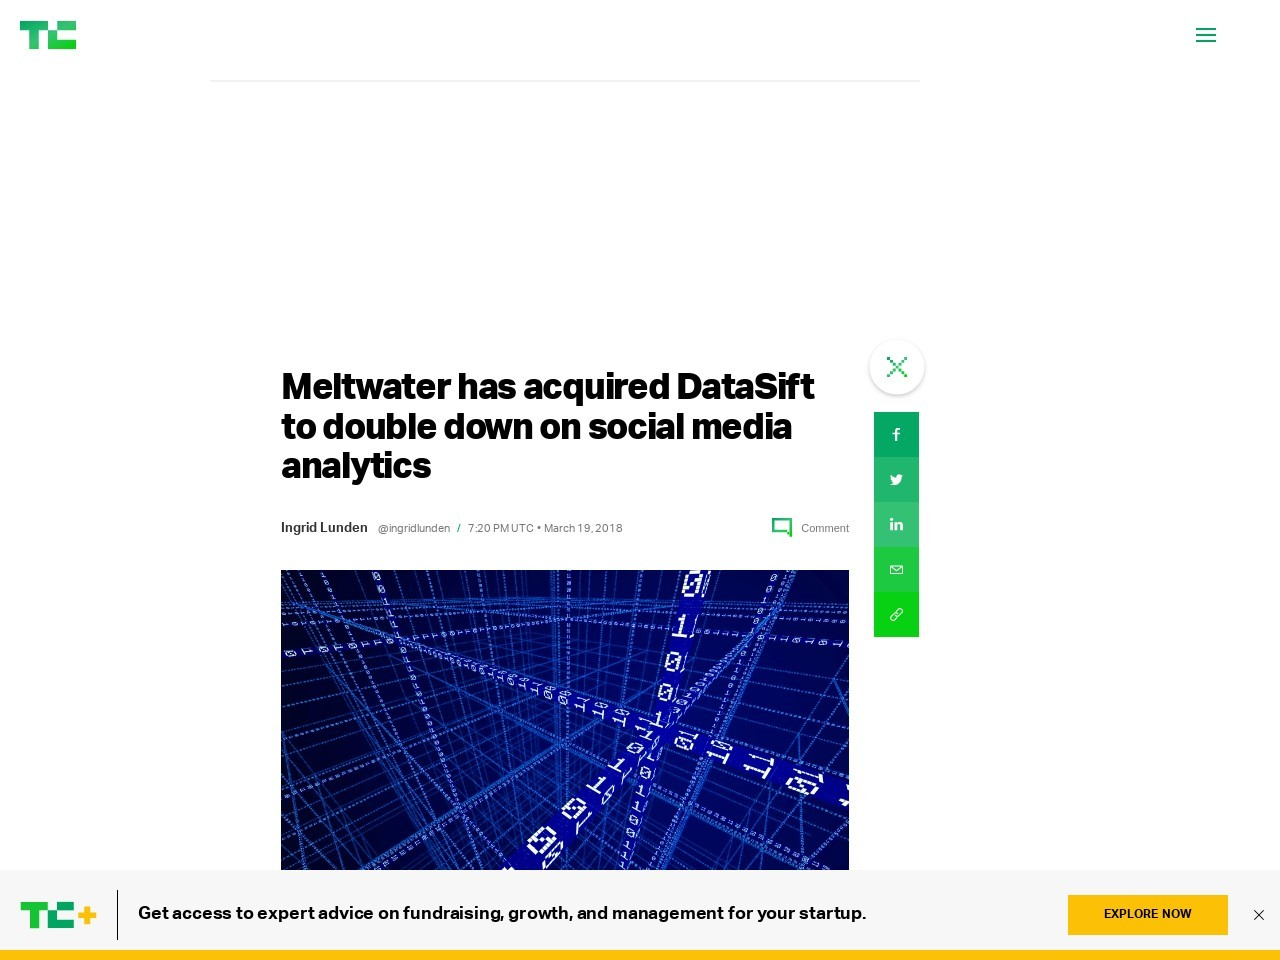 Meltwater has acquired DataSift to double down on social media analytics